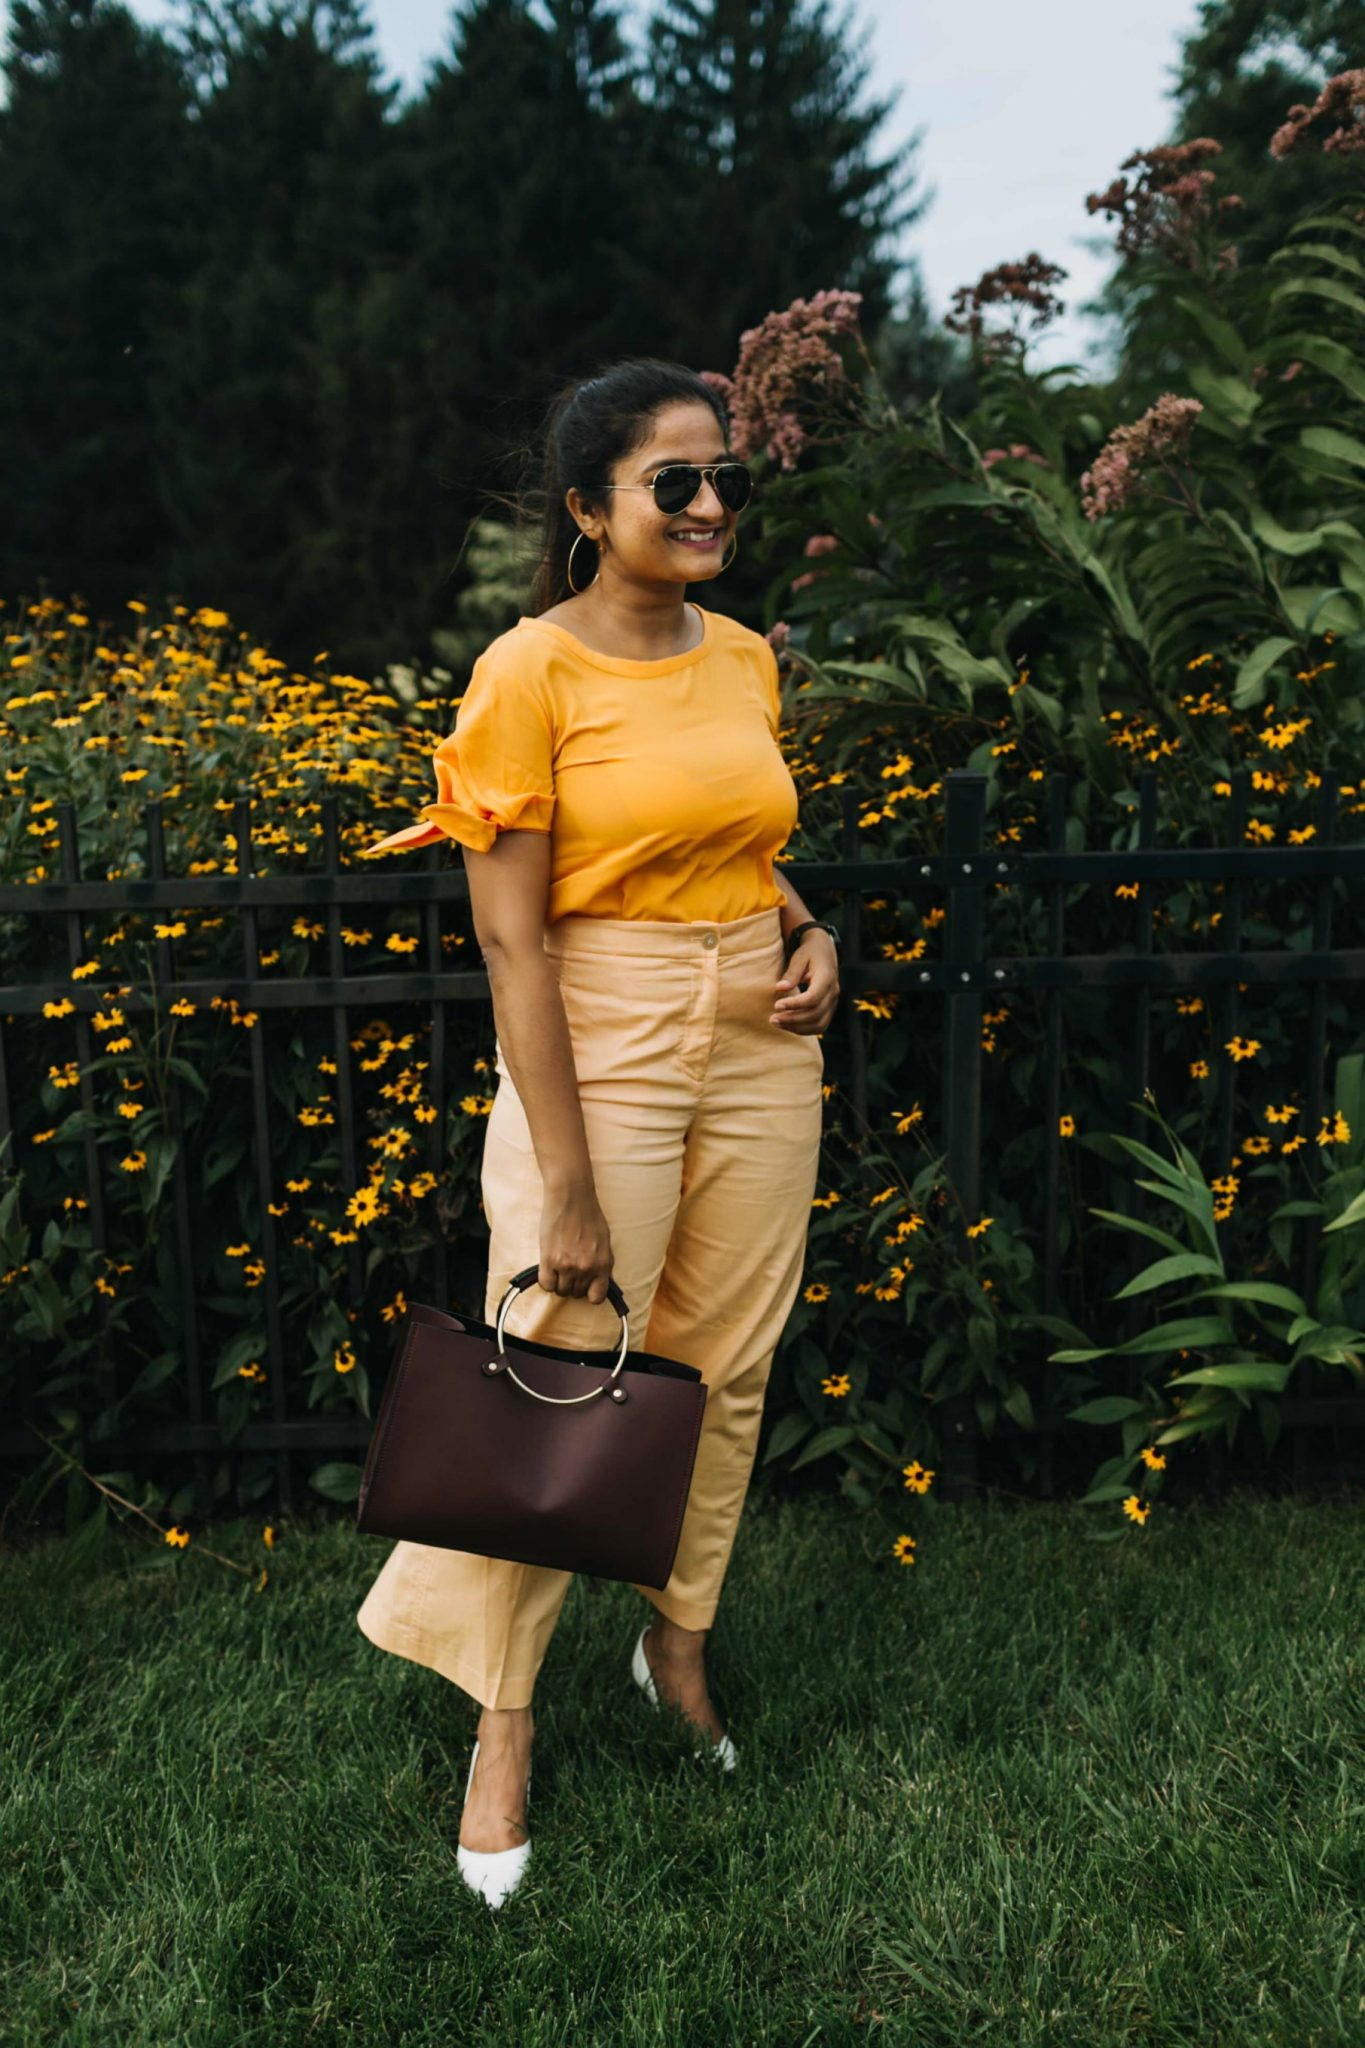 how to wear or style monochrome outfit | Orange Monochrome Outfit from the Ann Taylor Sale featured by popular US modest fashion blogger, Dreaming Loud